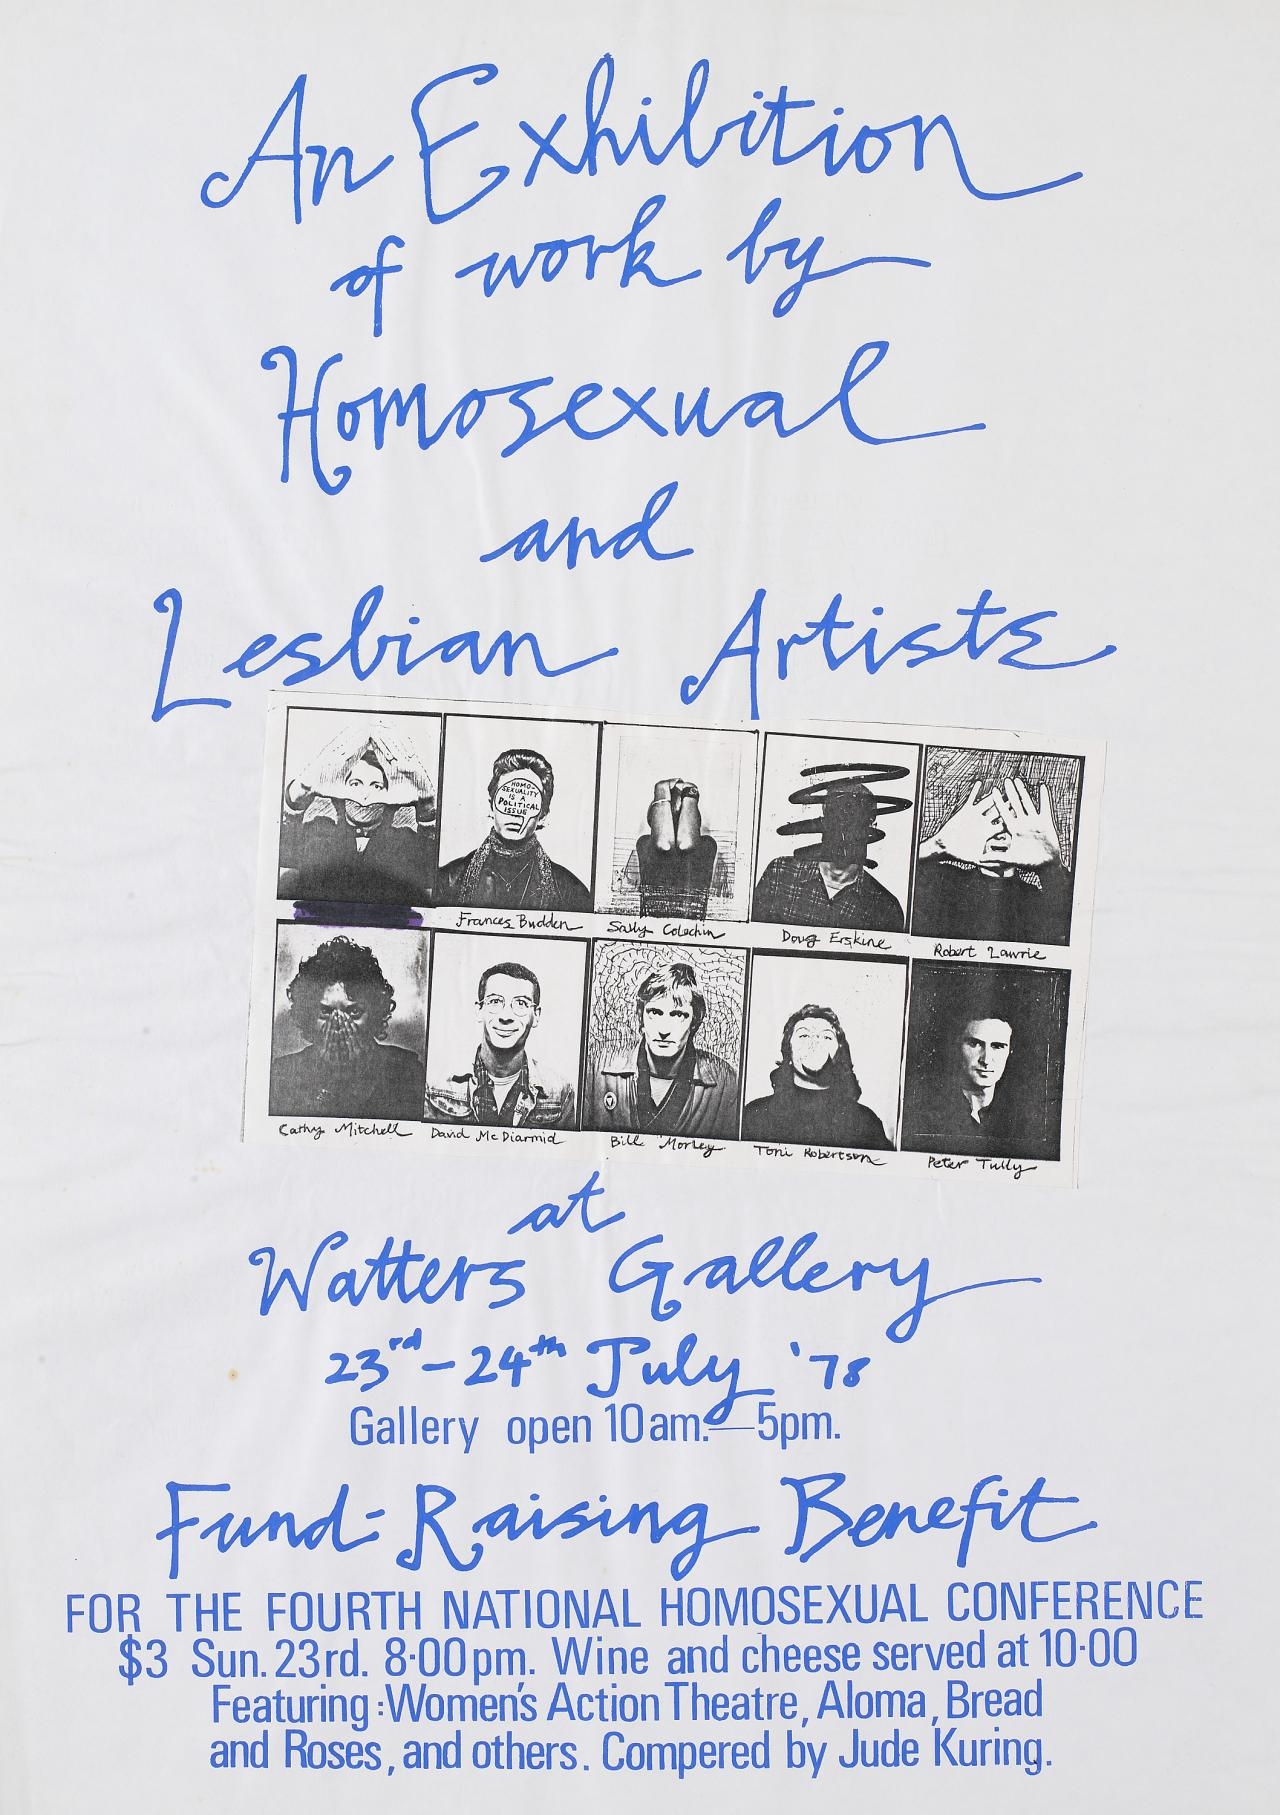 An exhibition of work by homosexual and lesbian artists